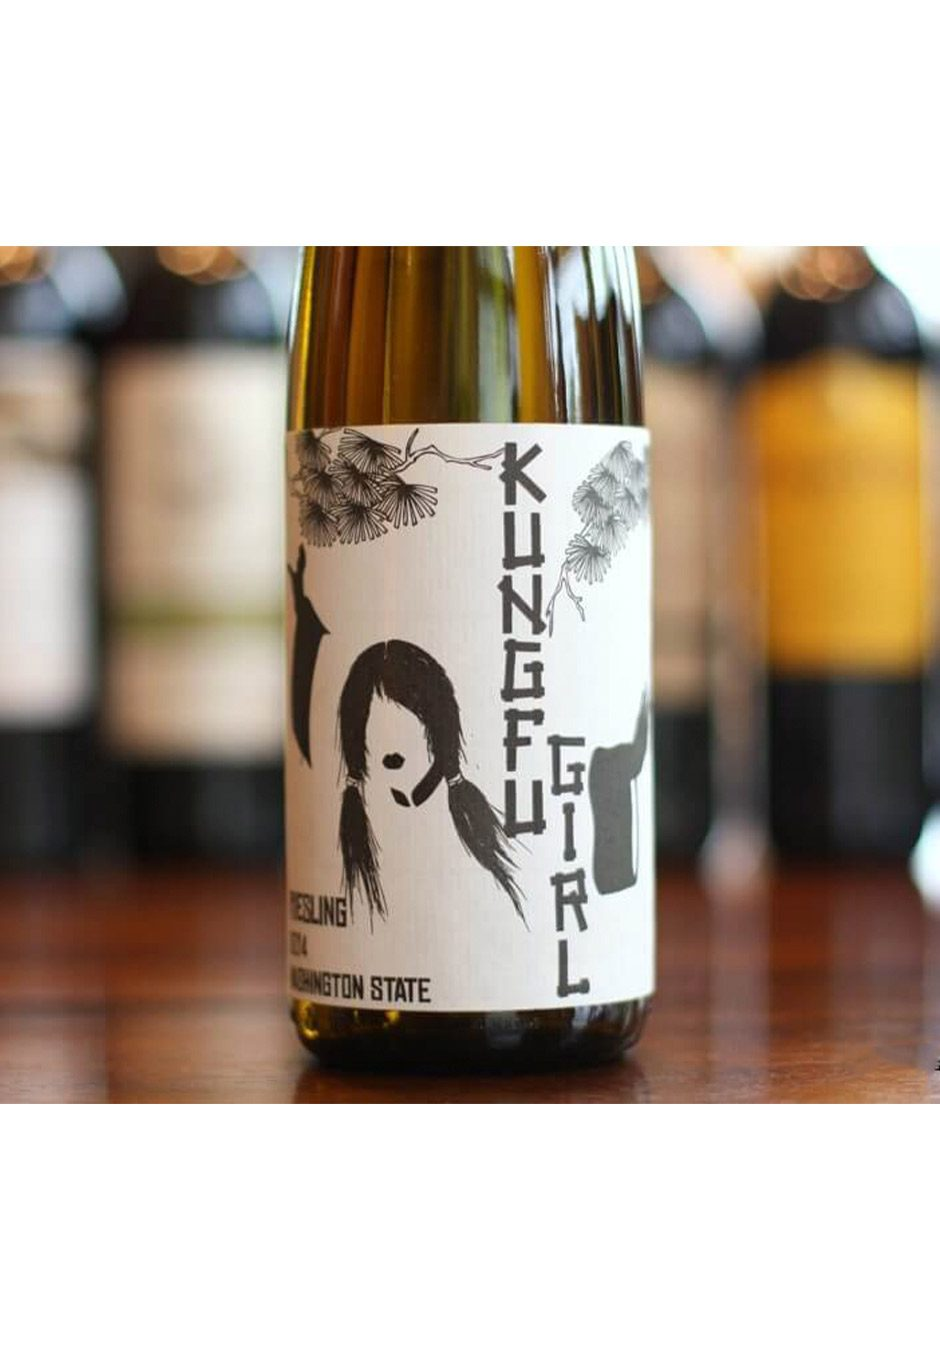 Charles Smith Kung Fu Girl | Riesling 2019 75cl | KeiCo Drinks